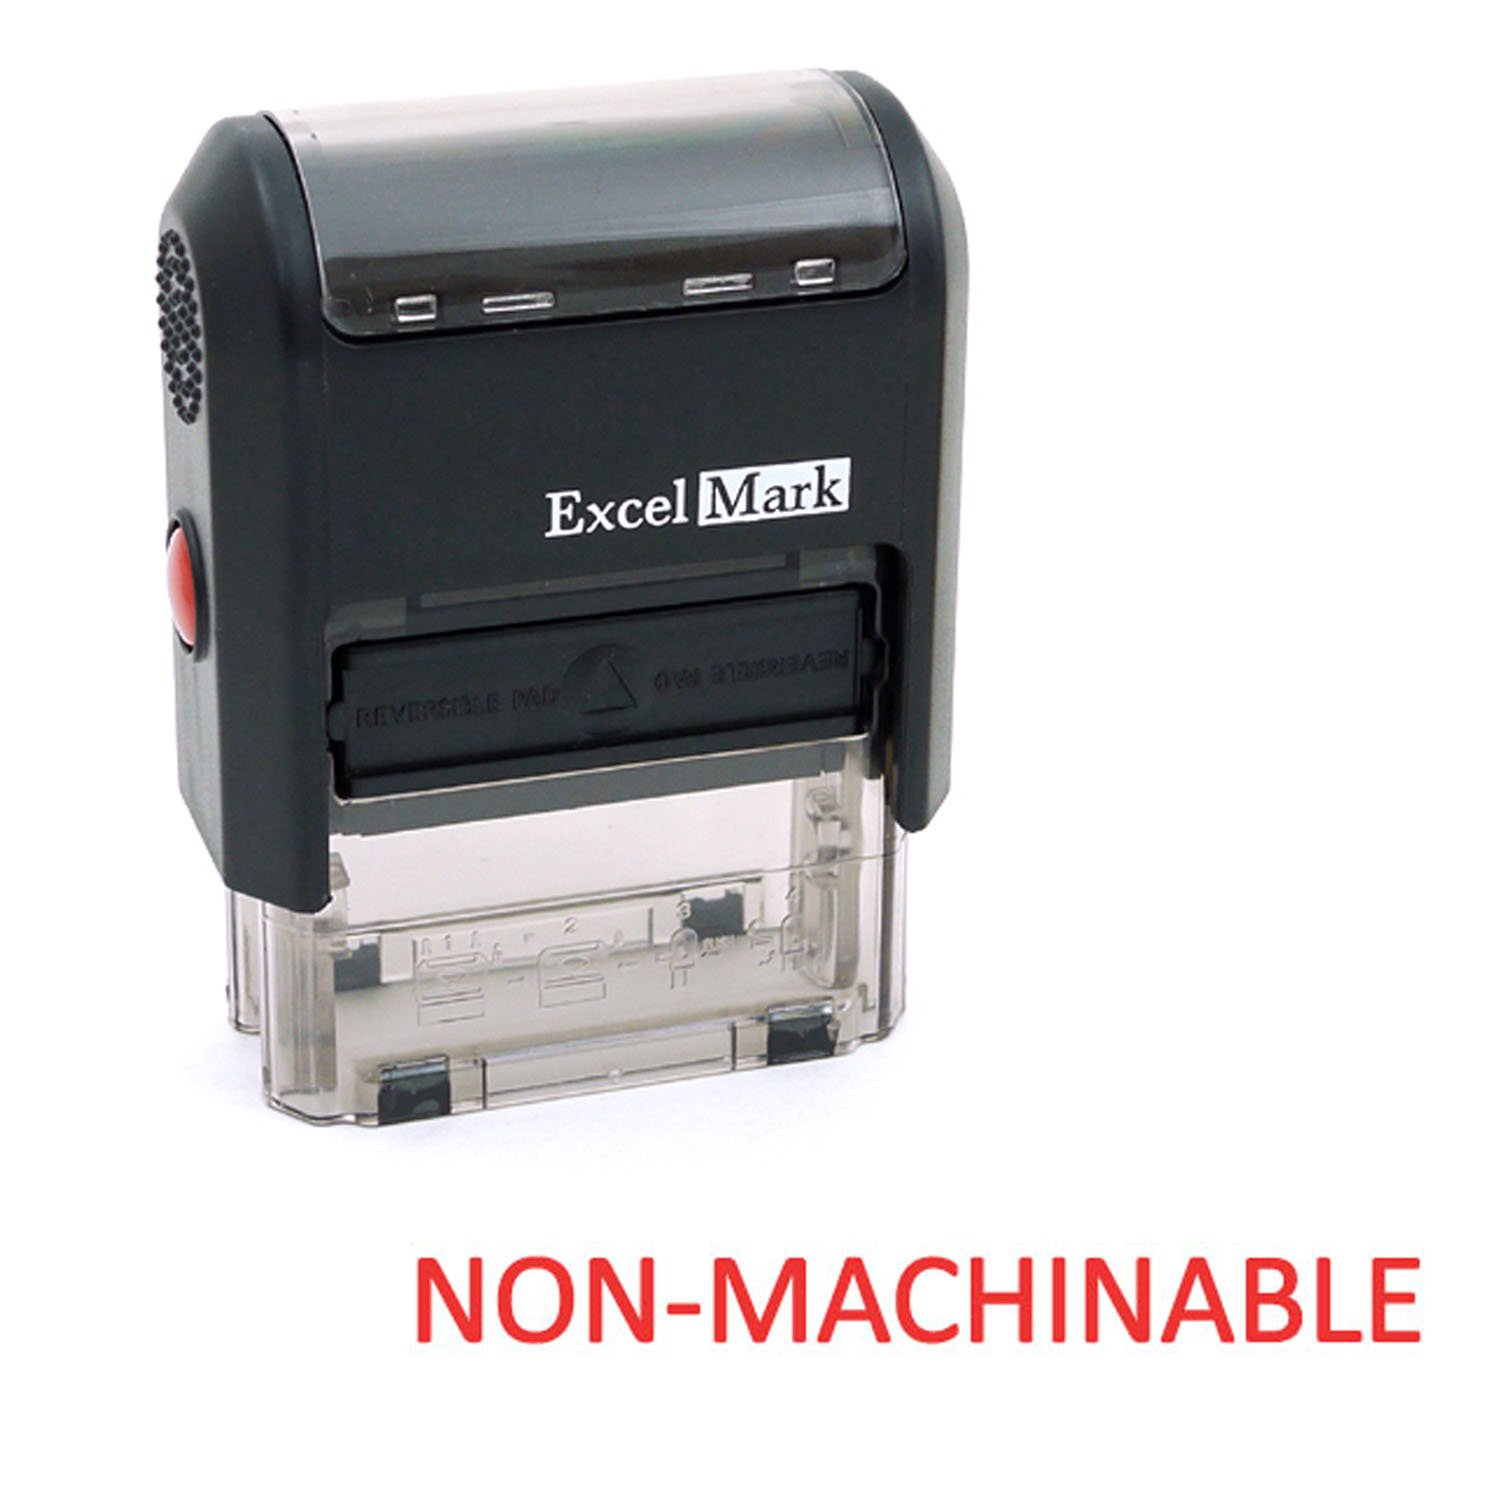 NON-MACHINABLE Self Inking Rubber Stamp - Red Ink (ExcelMark A1539)